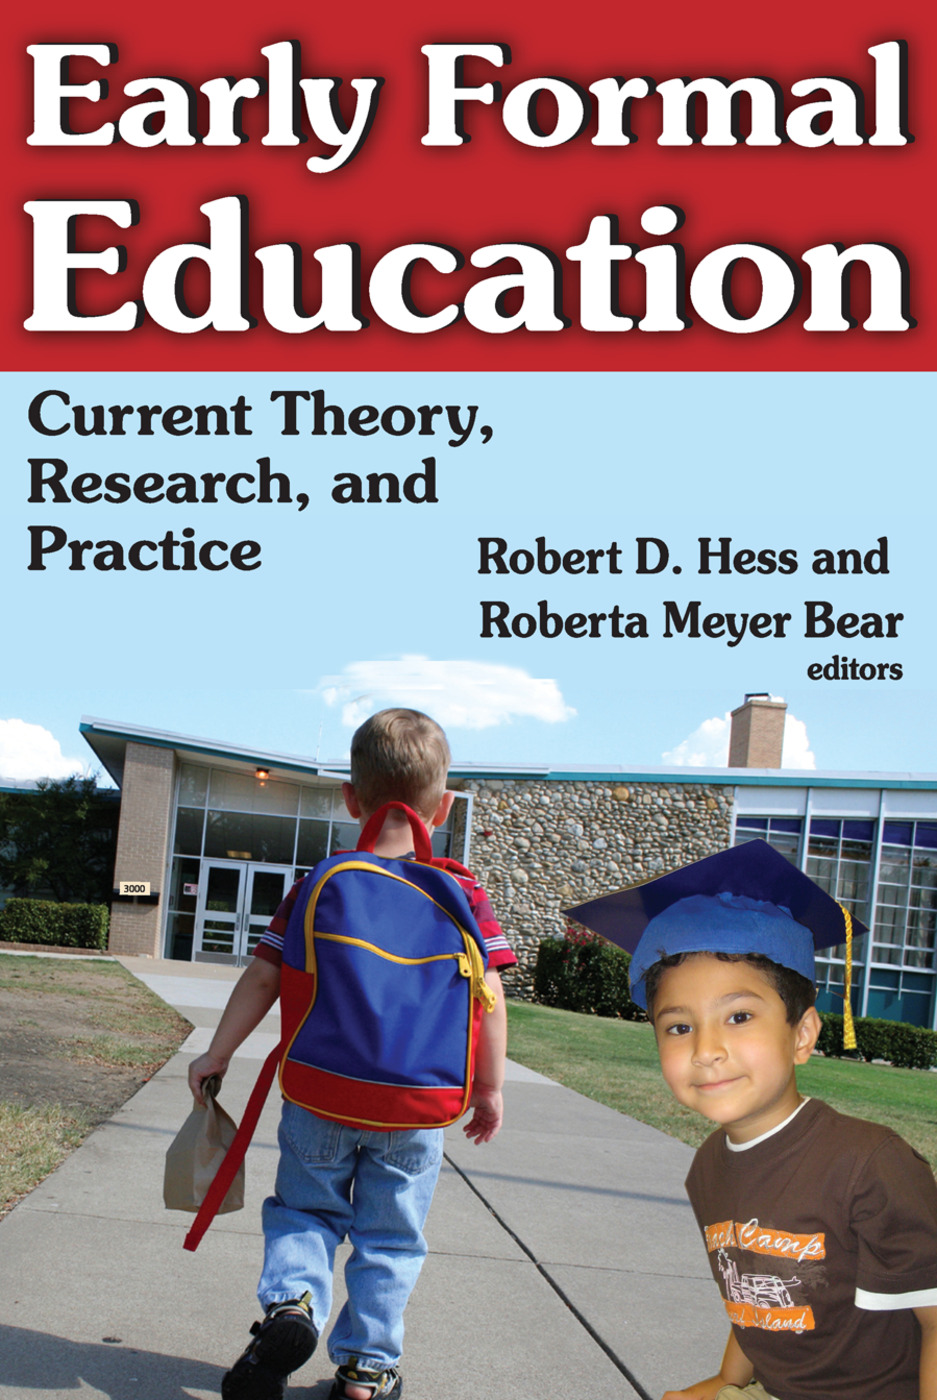 Early Formal Education: Current Theory, Research, and Practice, 1st Edition (Paperback) book cover